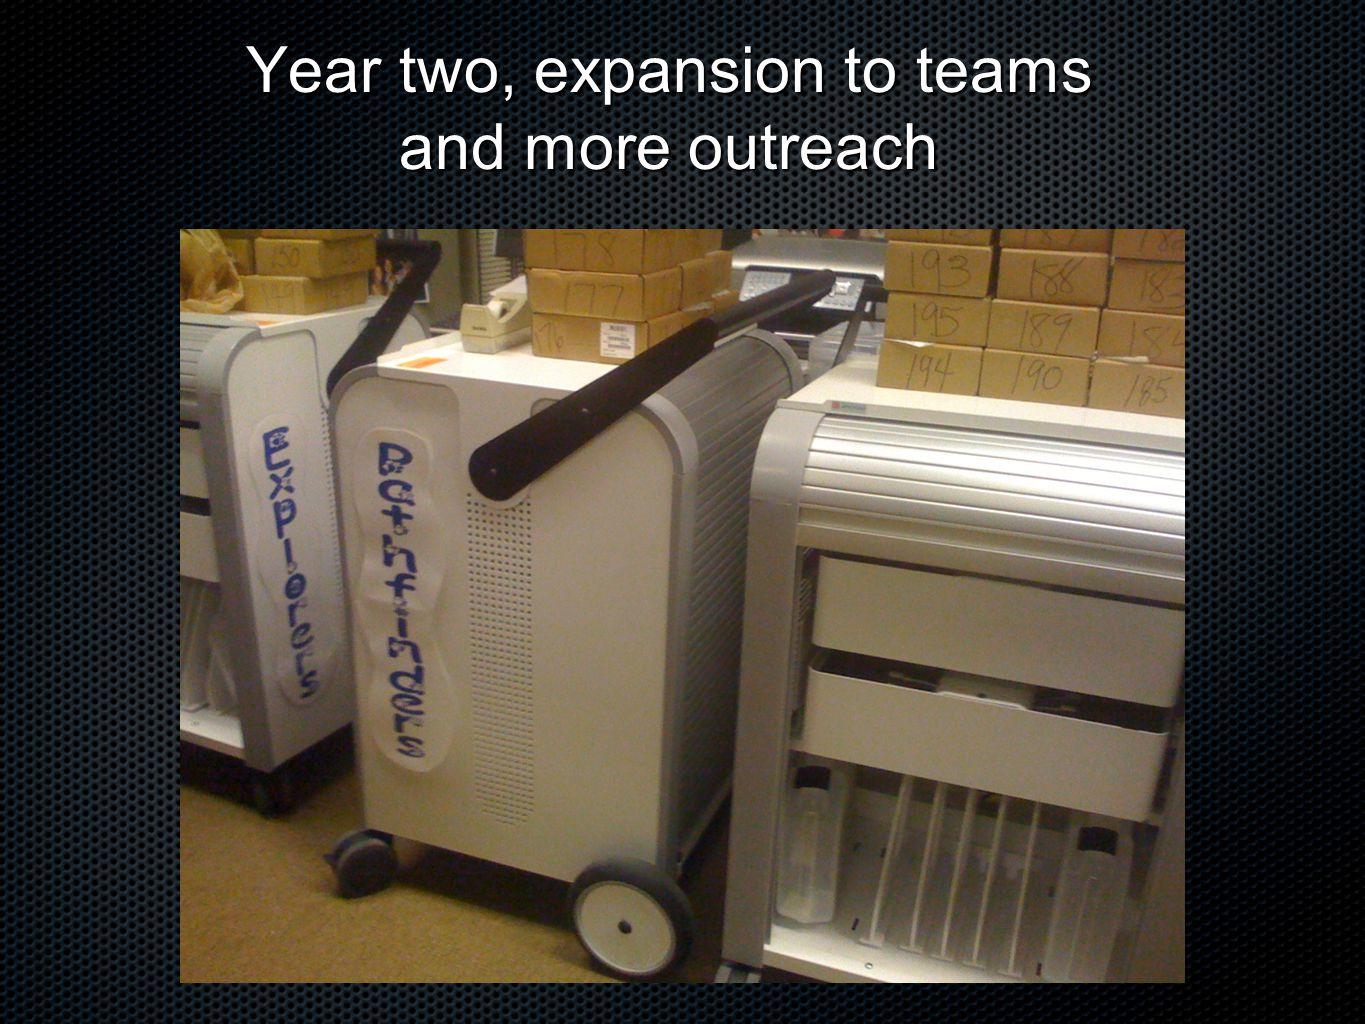 Year two, expansion to teams and more outreach